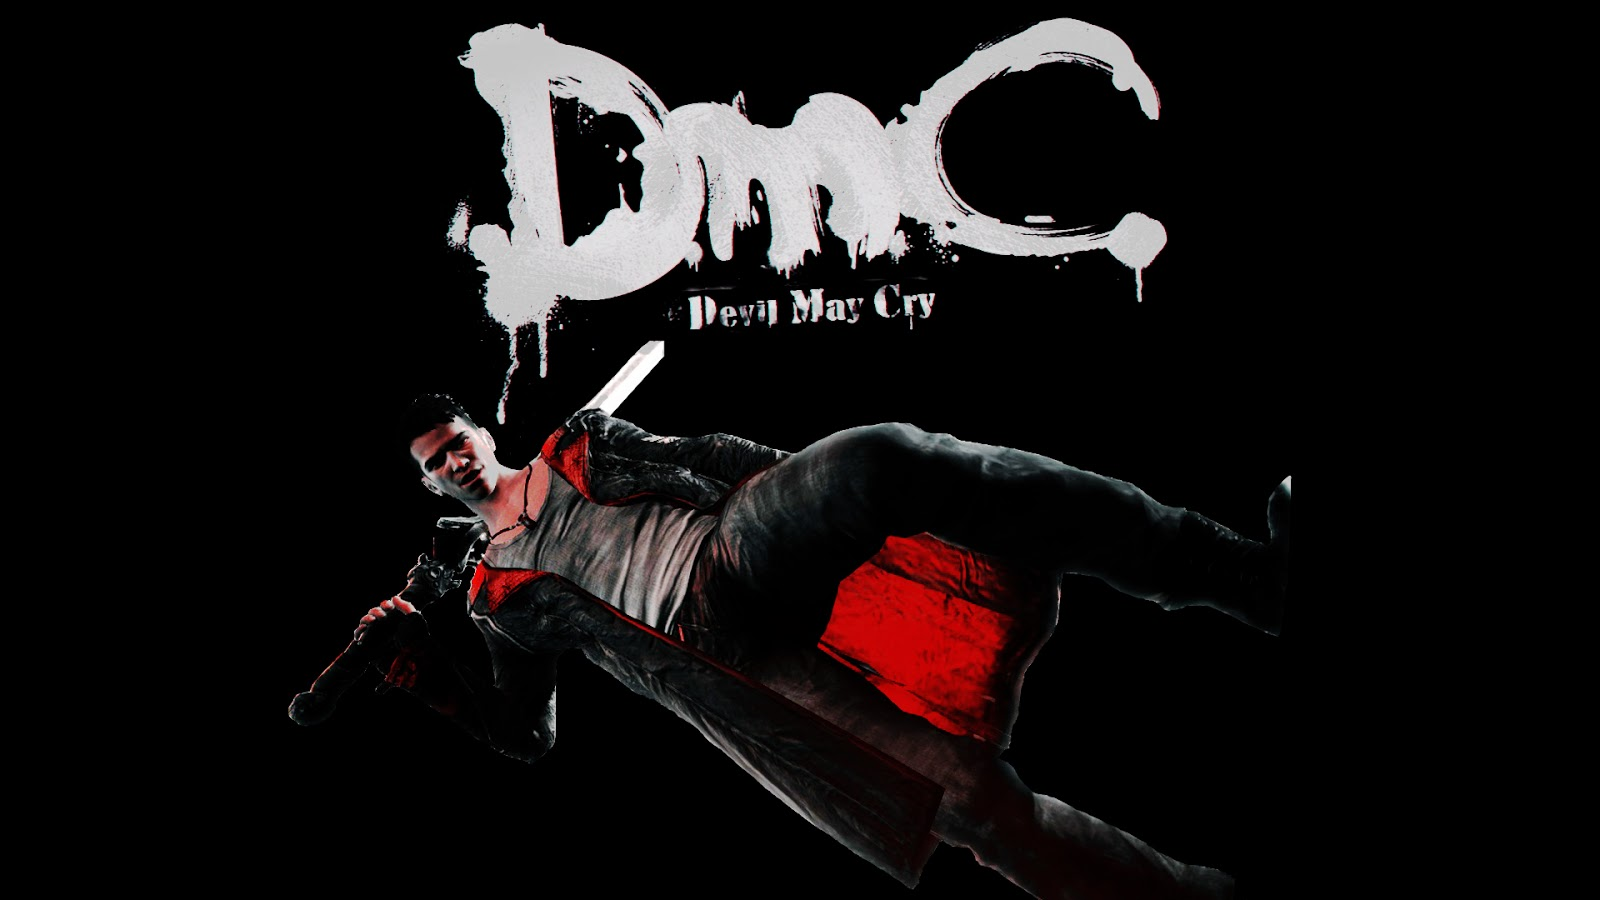 dmc 5 wallpaper free download imb show dmc 5 wallpaper free download imb show